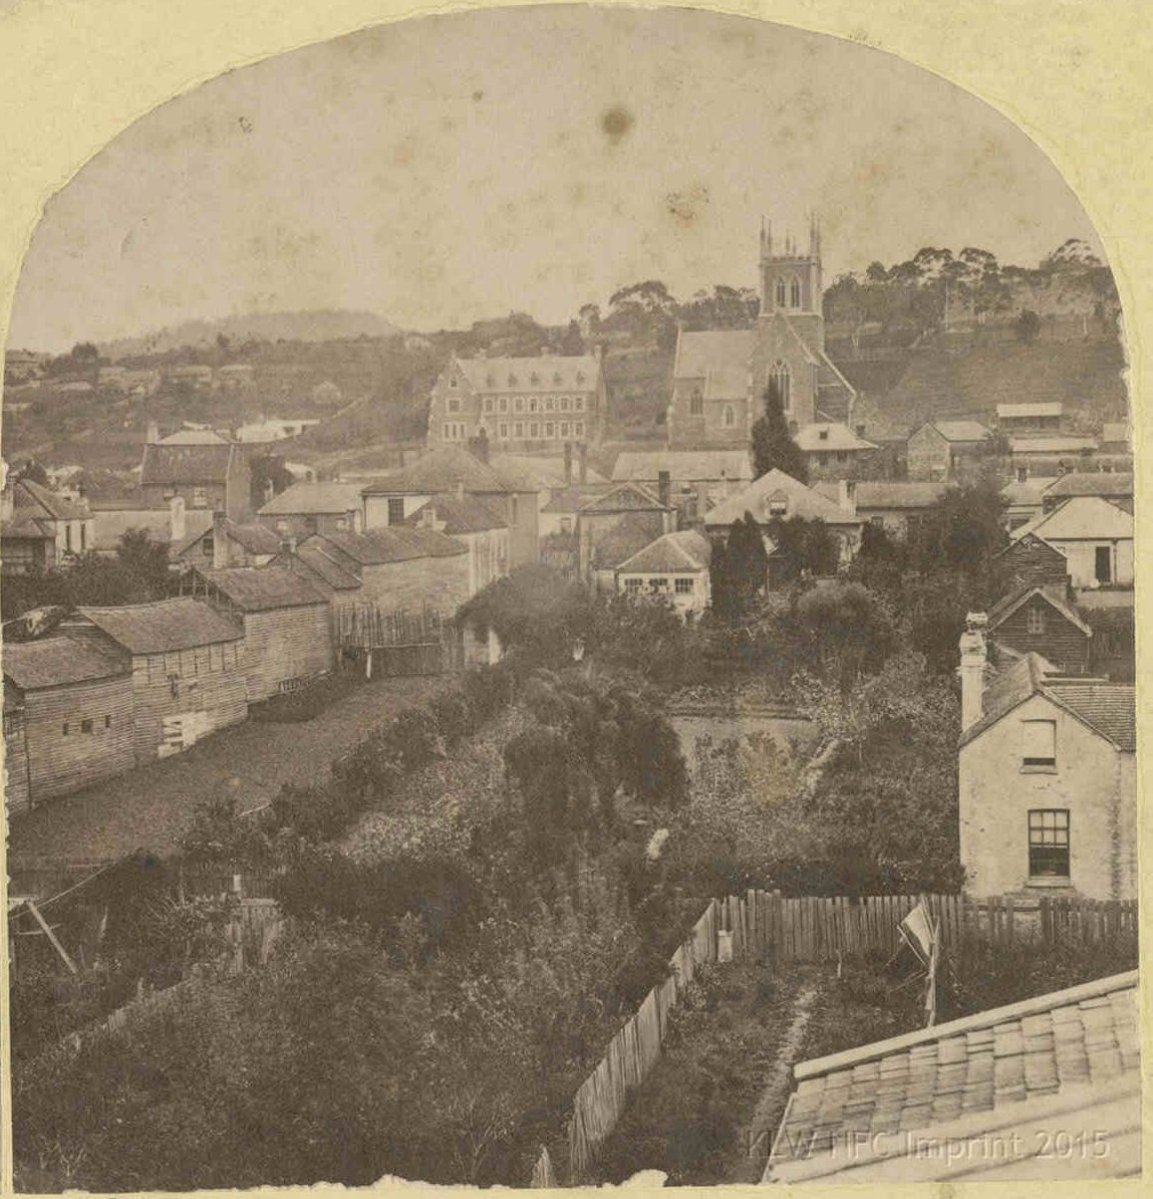 Thomas Nevin's stereo view of St Mary's Cathedral, Hobart, ca. 1874